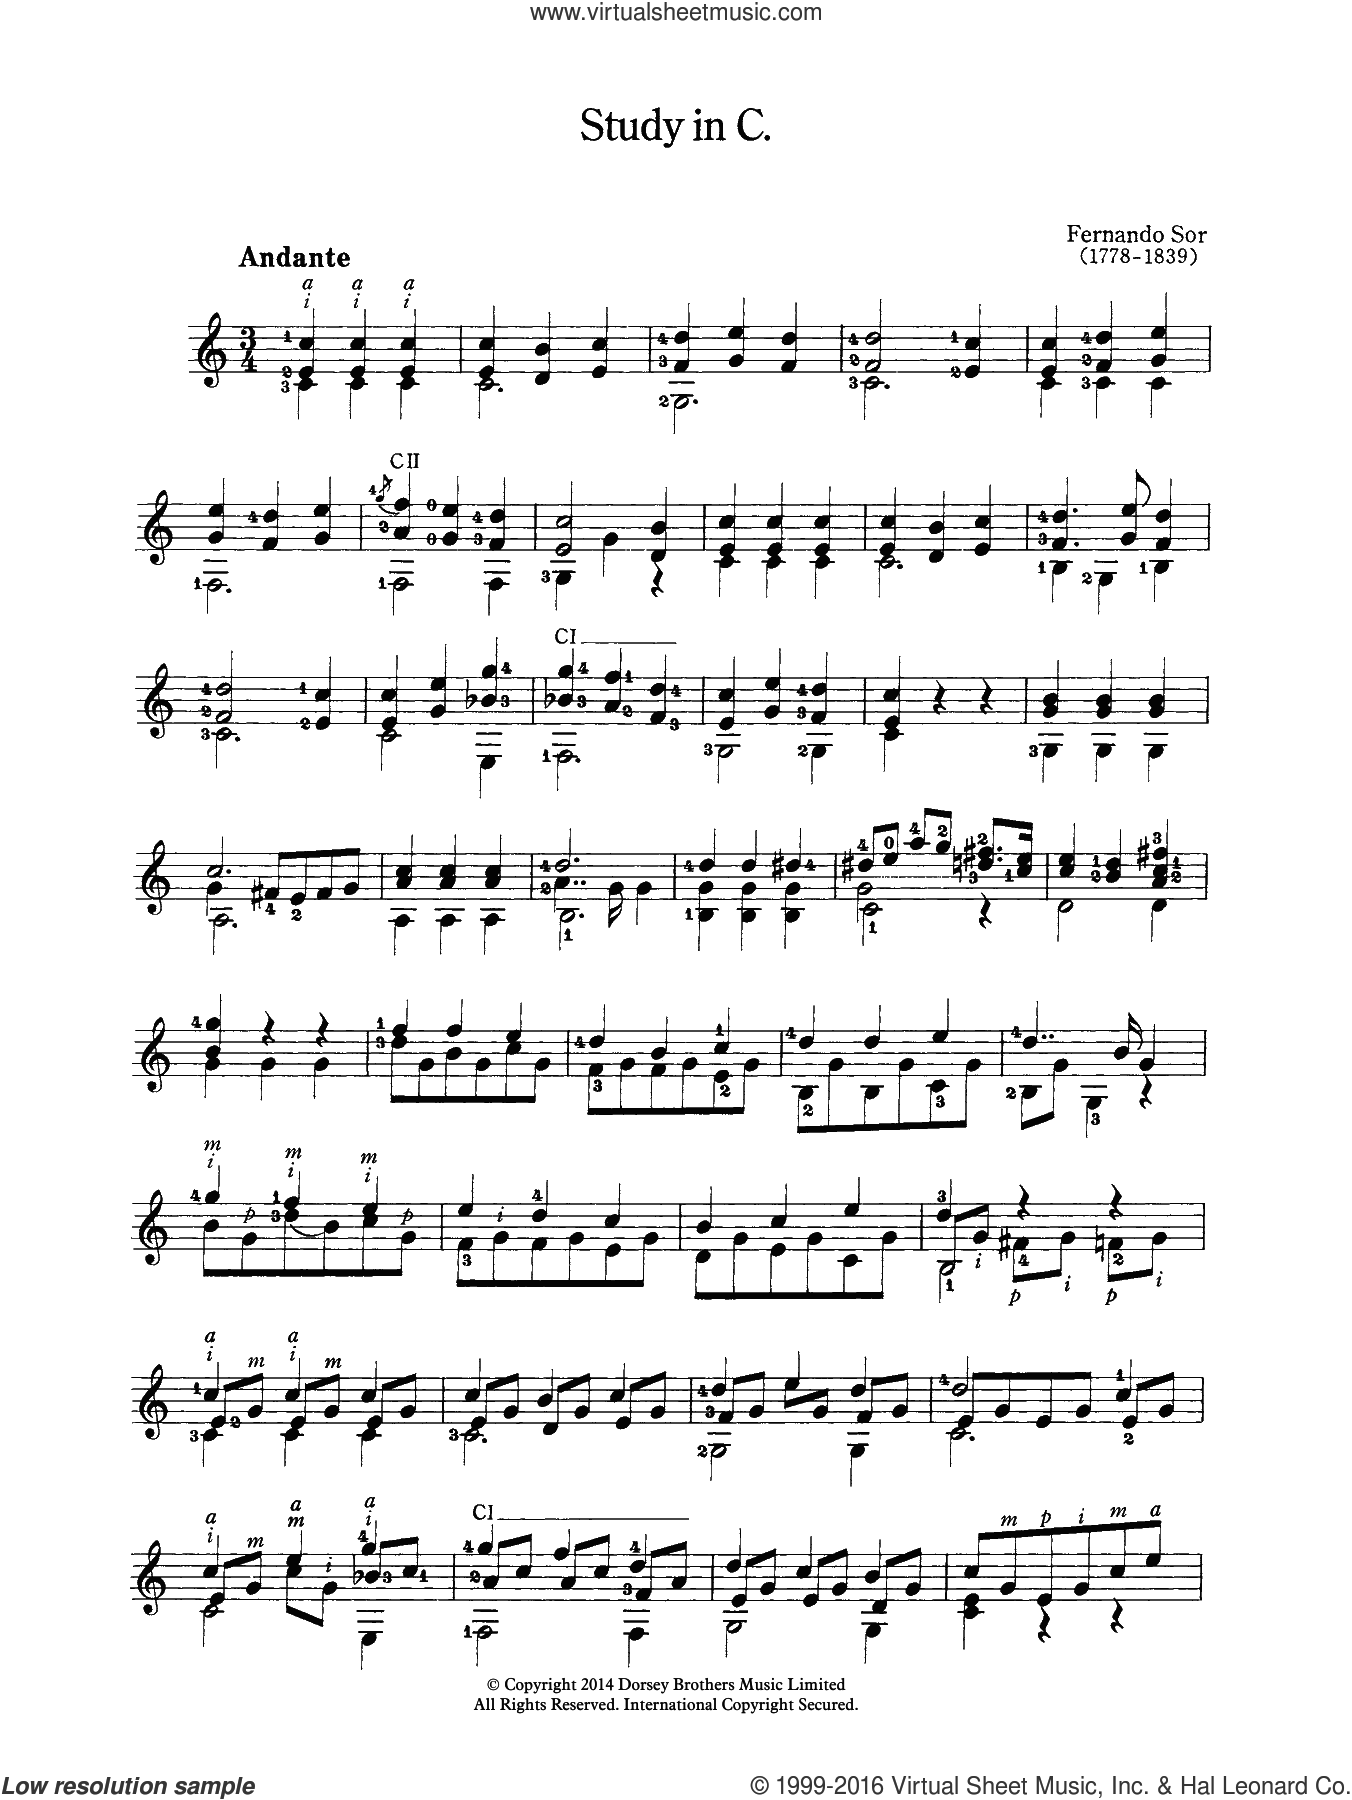 Study In C sheet music for guitar solo (chords) by Fernando Sor, classical score, easy guitar (chords)